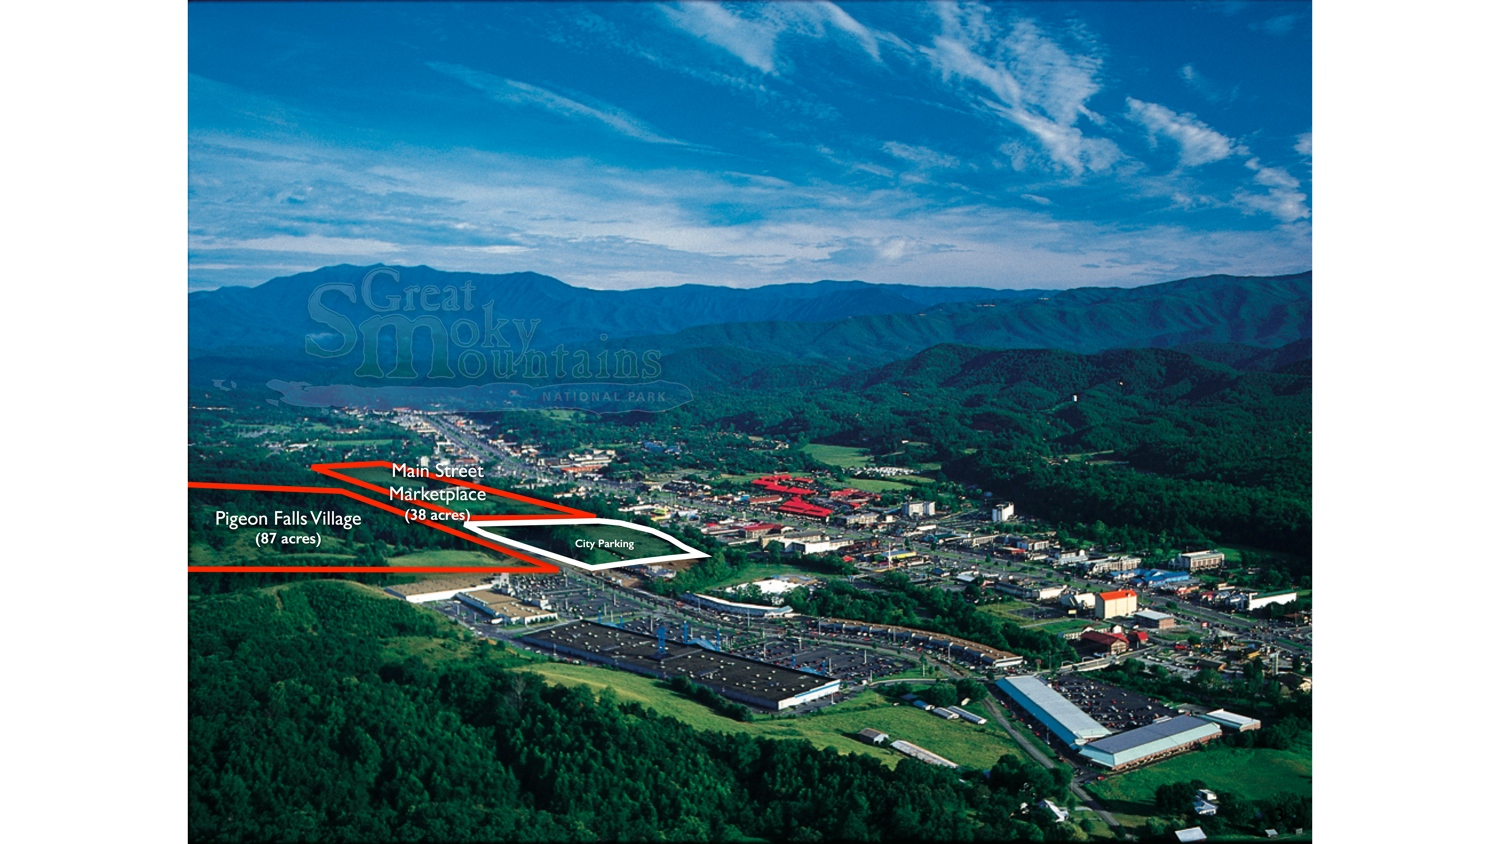 12. Pigeon Falls Site View of Mountains Strategic Leisure.jpg